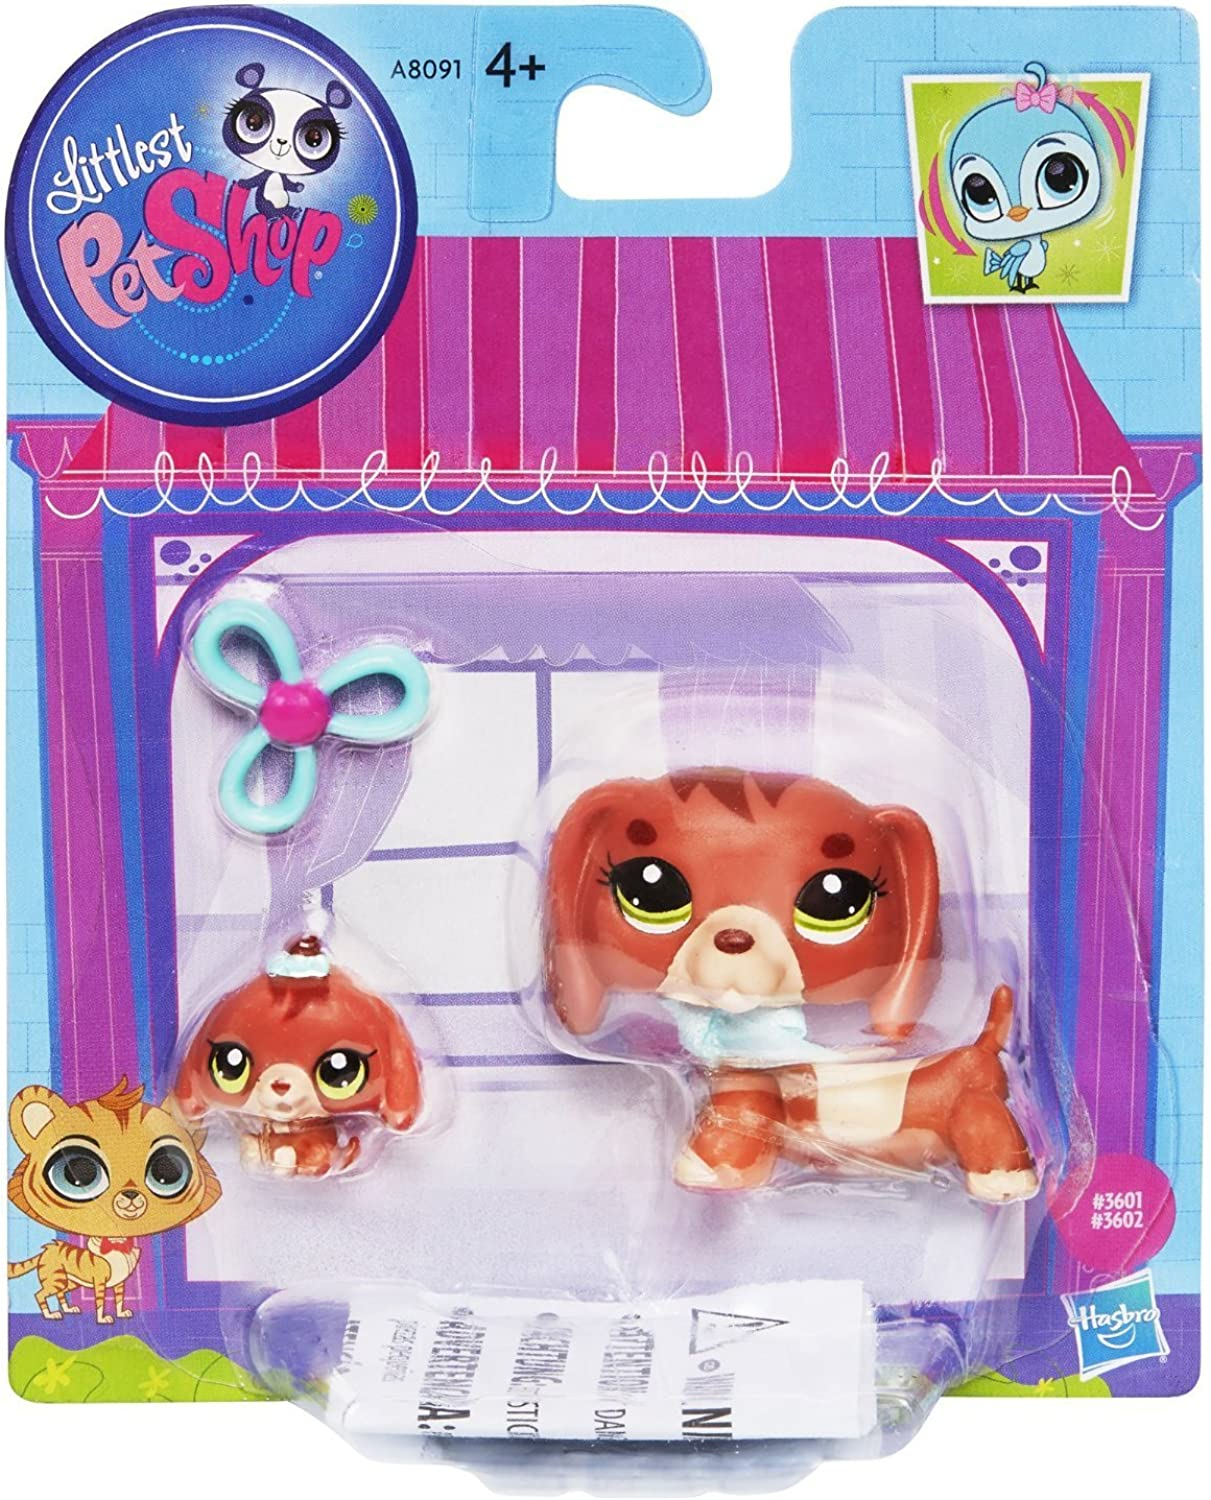 Littlest Pet Shop  3601 Dachshund and  3602 Baby Dachshund Pets